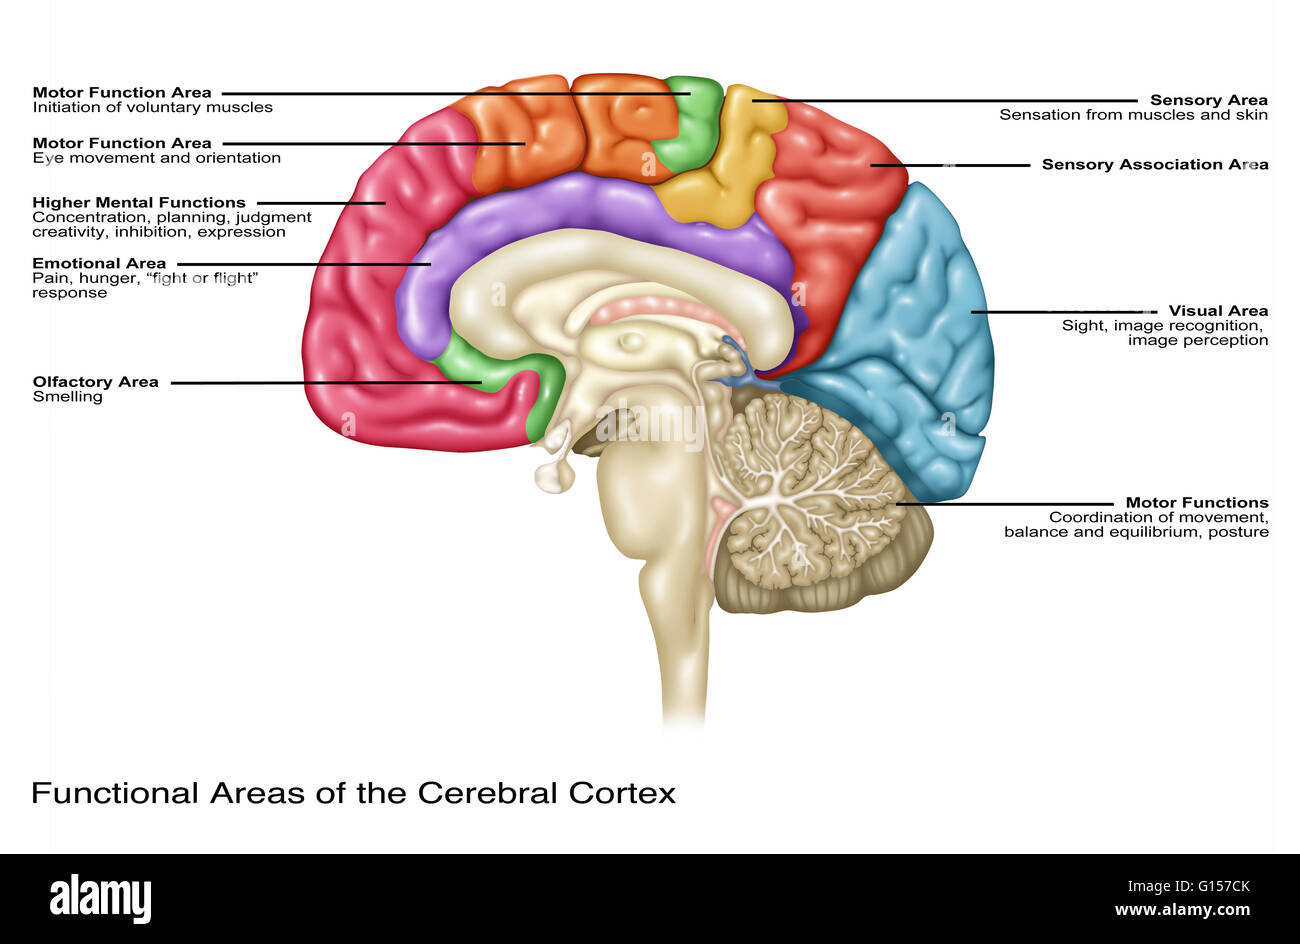 illustration of the functional areas of the cerebral cortex stock photo 103992467 alamy. Black Bedroom Furniture Sets. Home Design Ideas